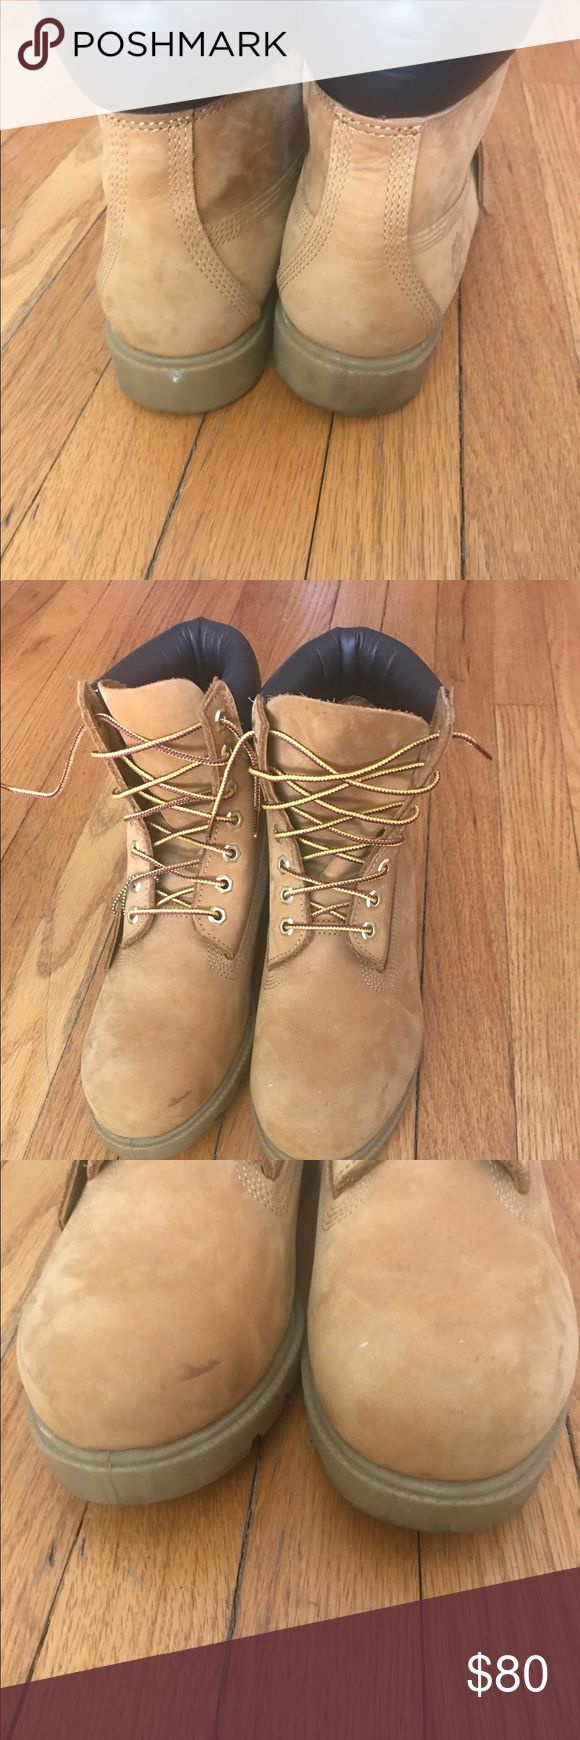 Men's Wheat Timberland Boots size 8 Gently used, good condition. Men's Wheat Timberland Boots size 8. Check out the pics. Timberland Shoes Boots